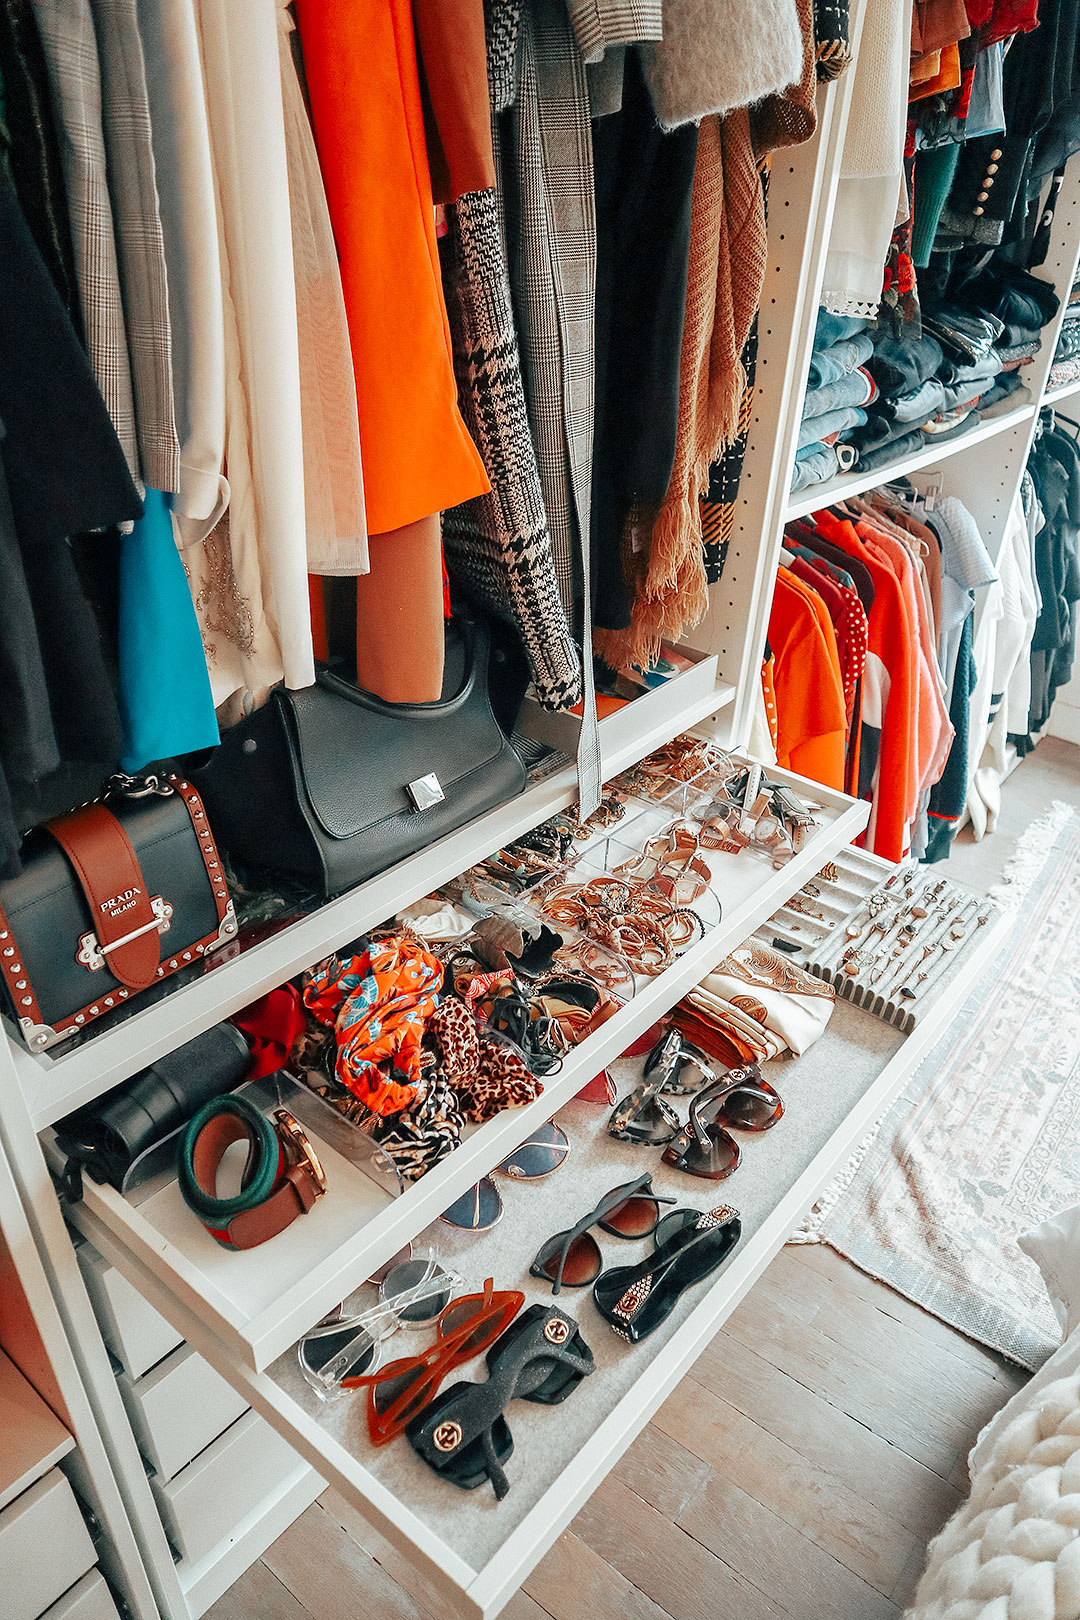 Dressing, comment l'organiser